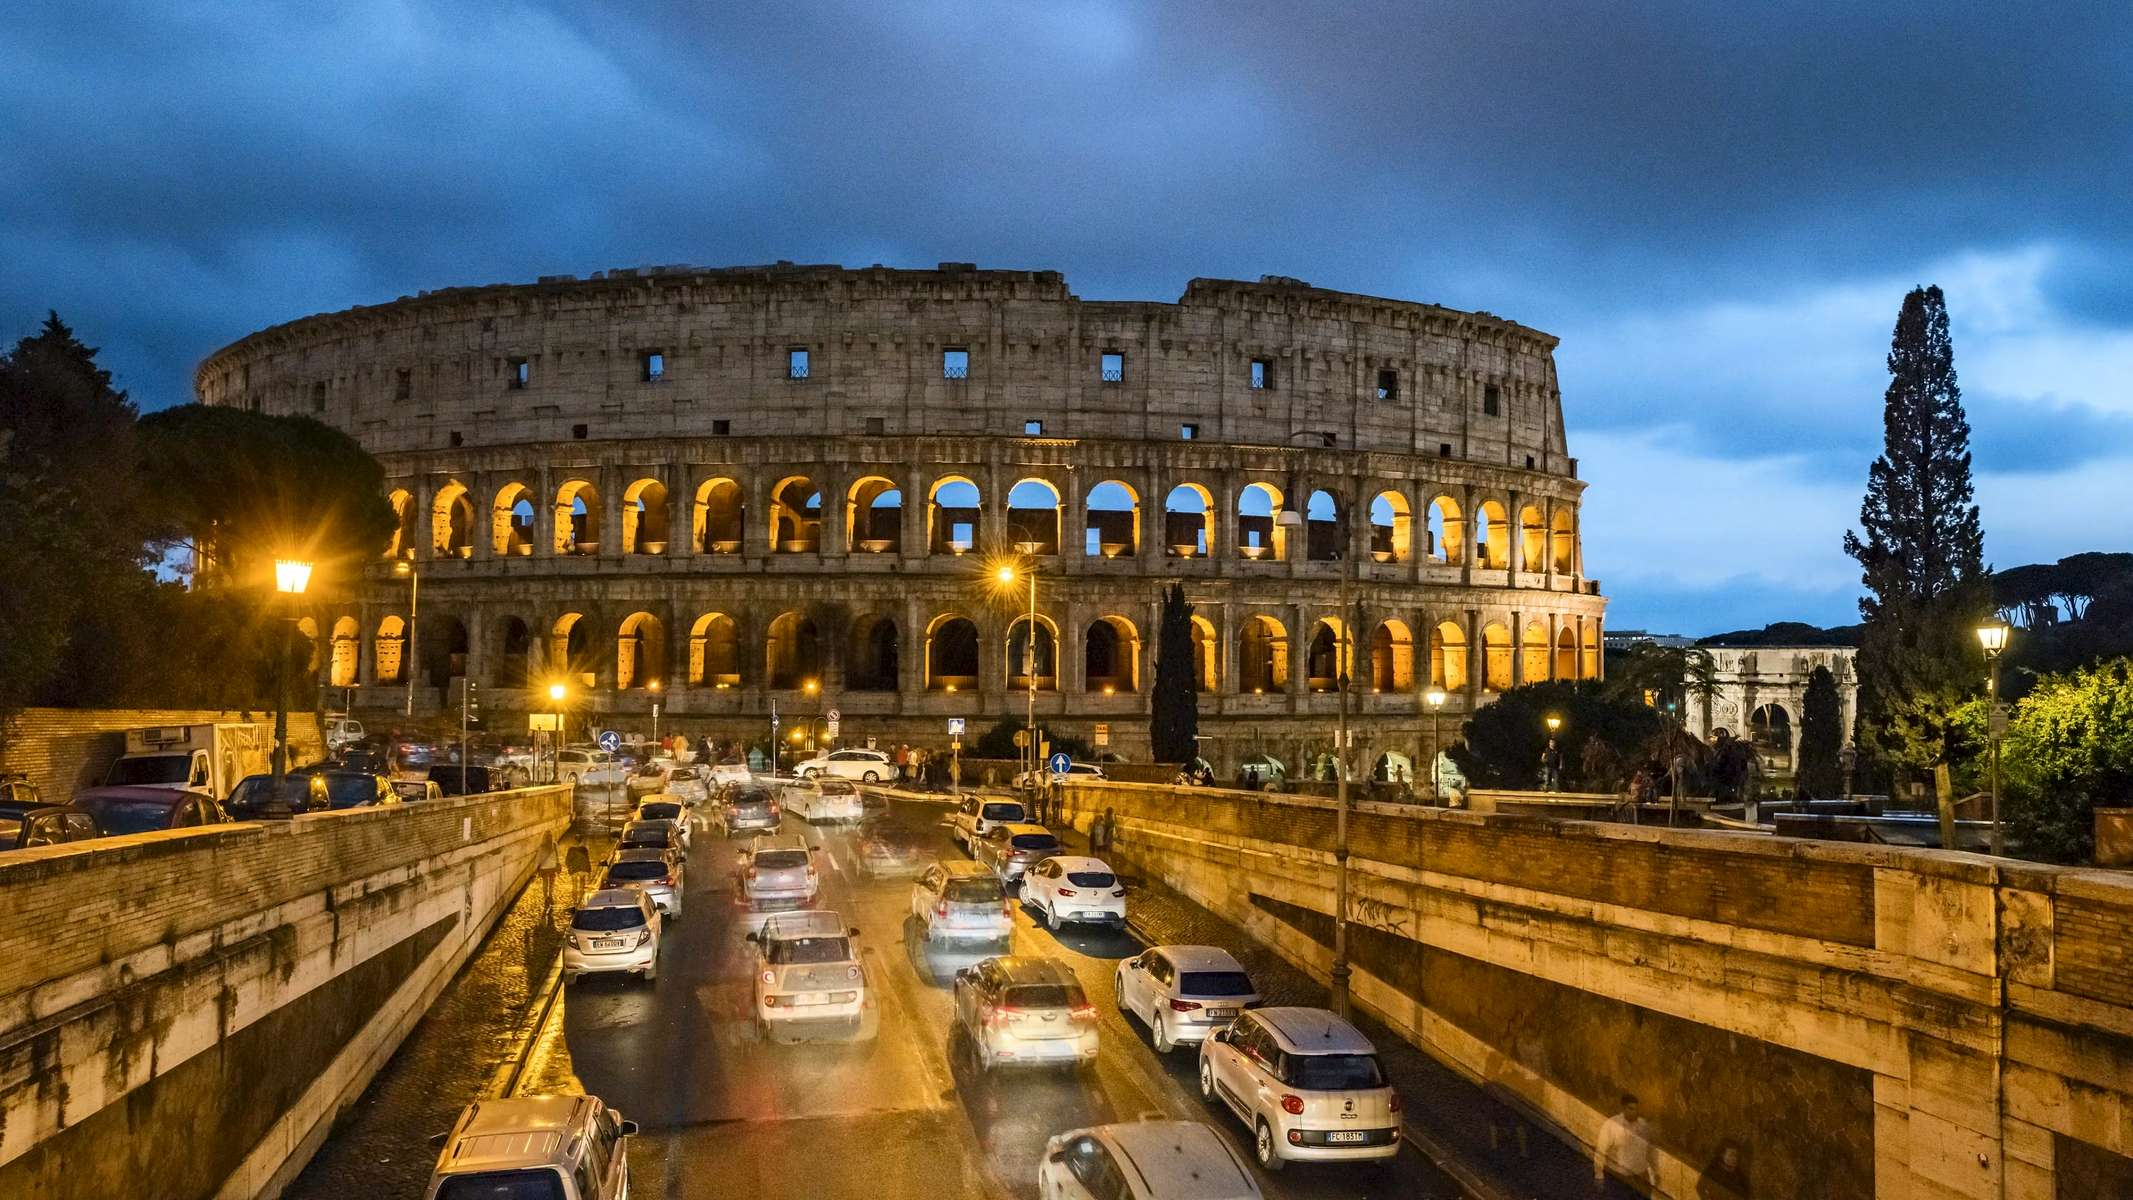 Traffic at the Colosseum in Rome.